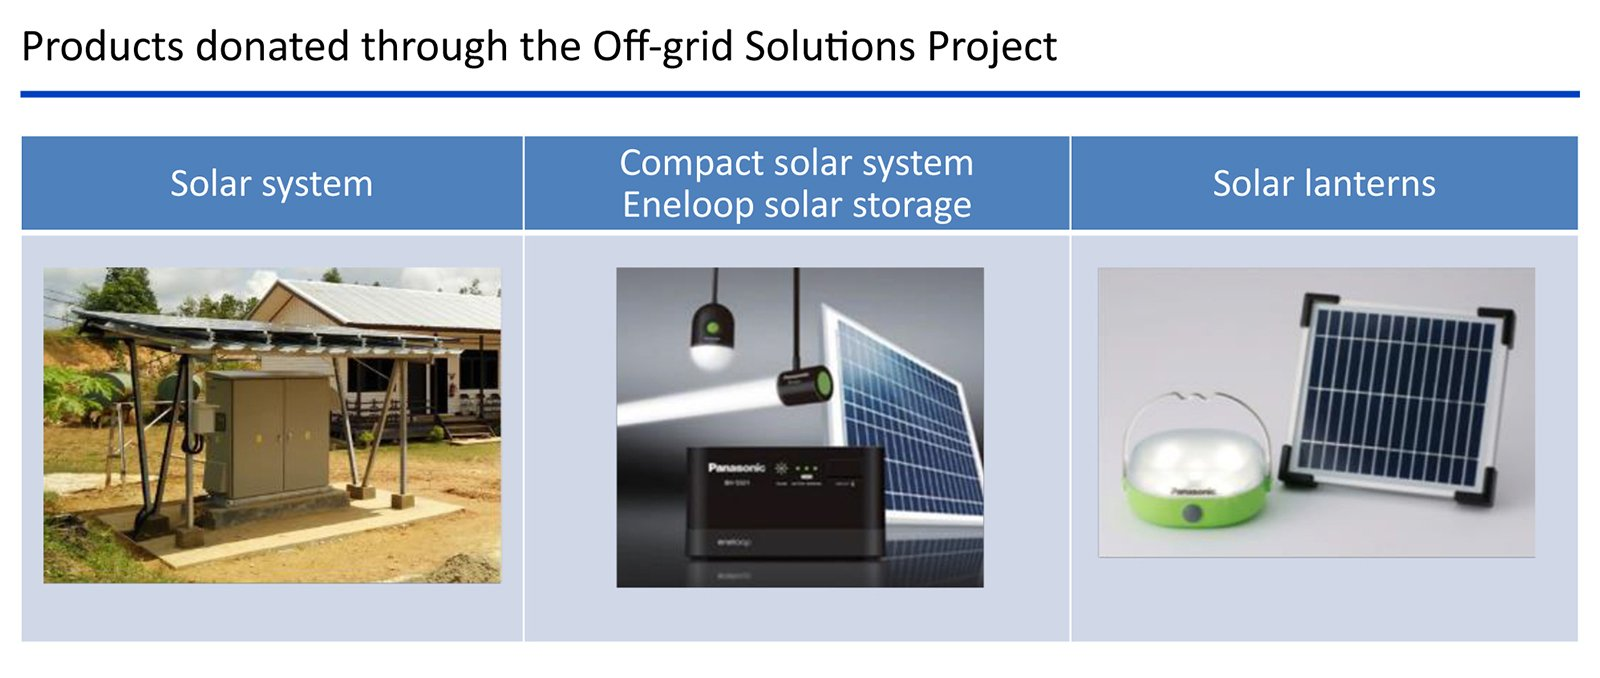 Products donated through the Off-grid Solutions Project